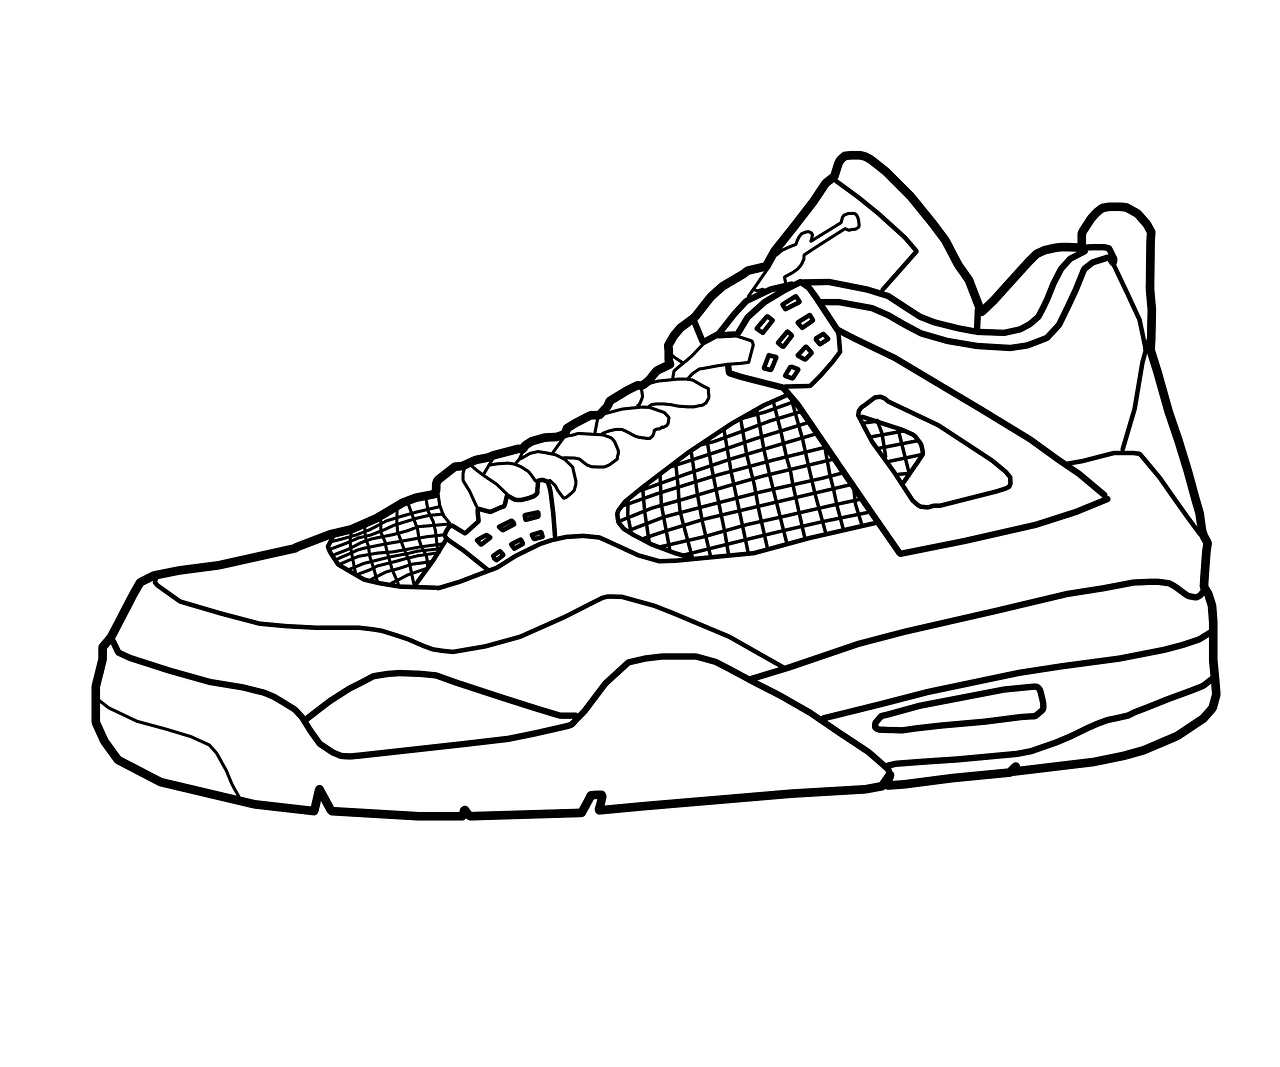 Free coloring pages jordan shoes - Drawing Jordans Shoes Coloring Pages